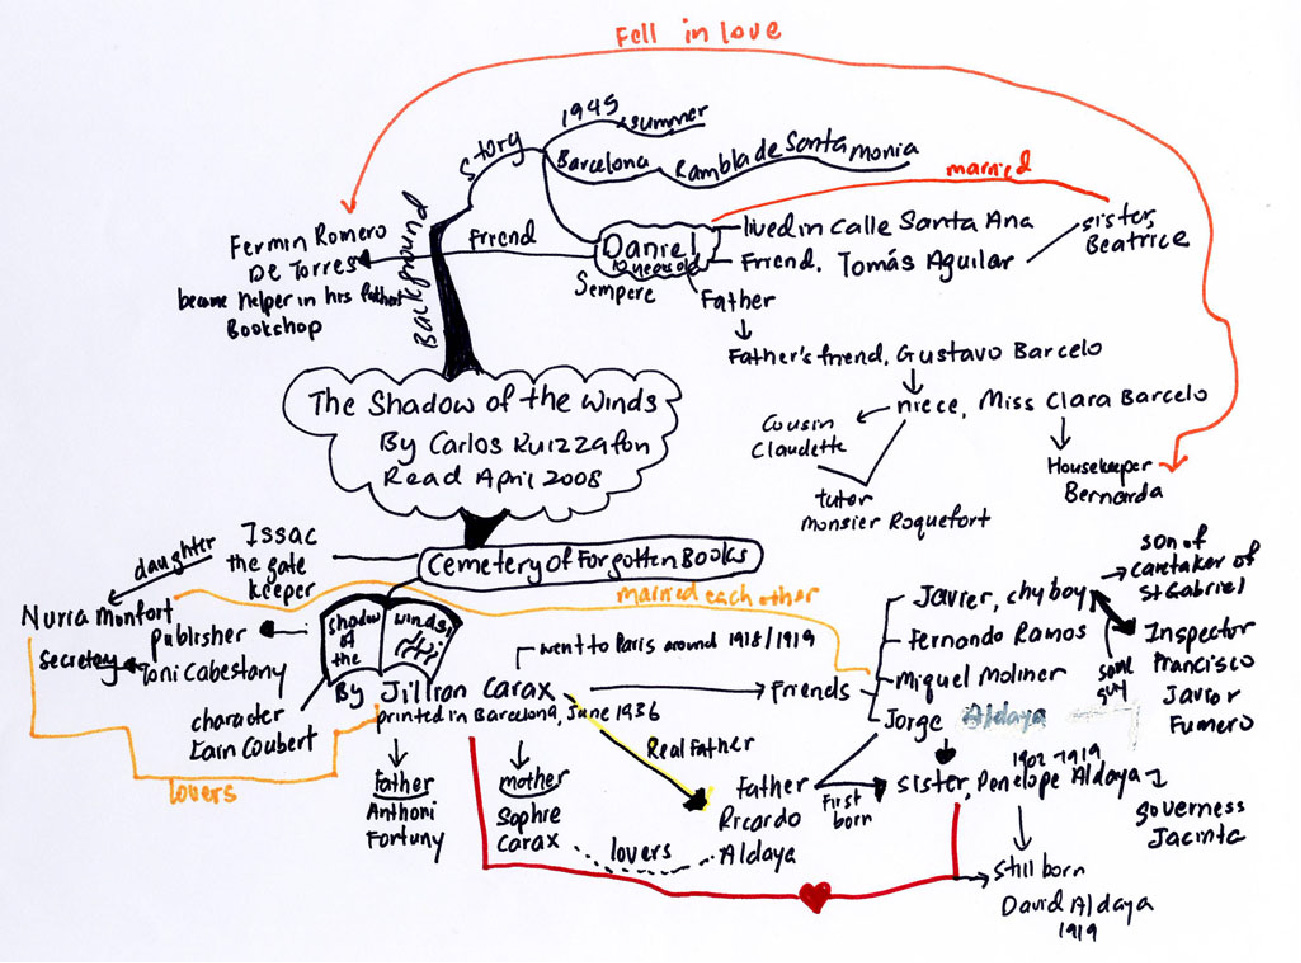 A concept map shows a glob of student's notes using connectors, bubbles, lists, symbols, and different colors.